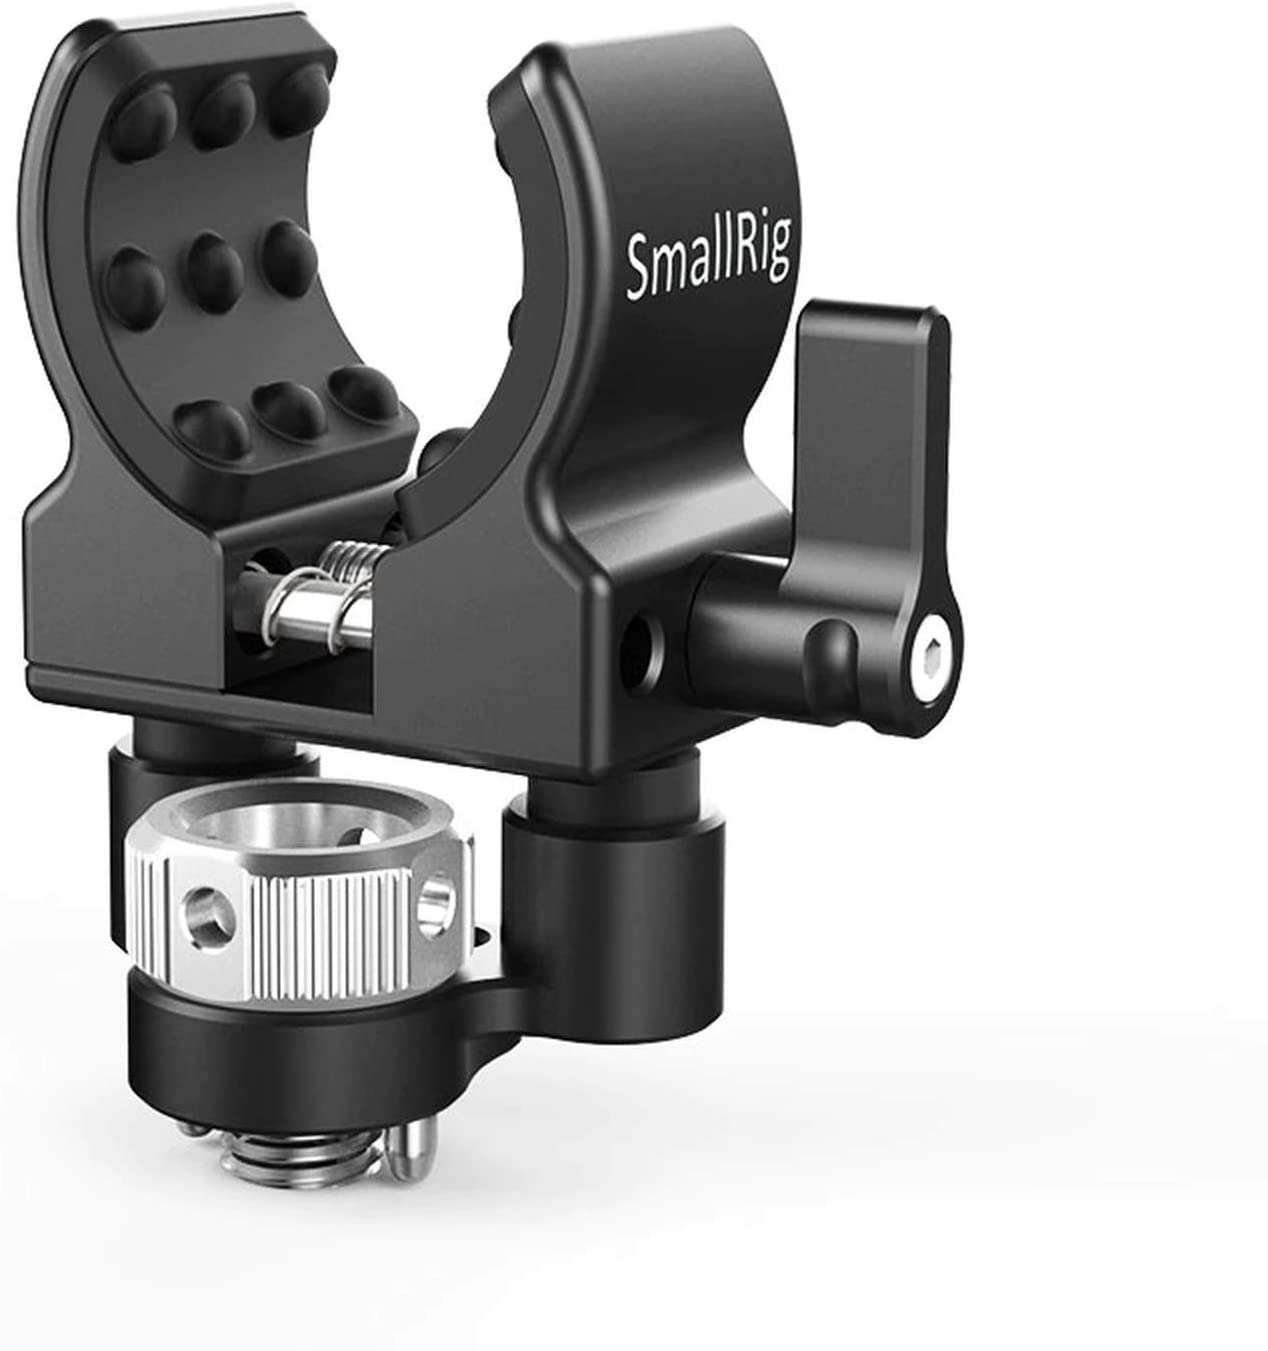 2114 SMALLRIG Ballhead with Locating Pins for ARRI Standard and Rubber Ring